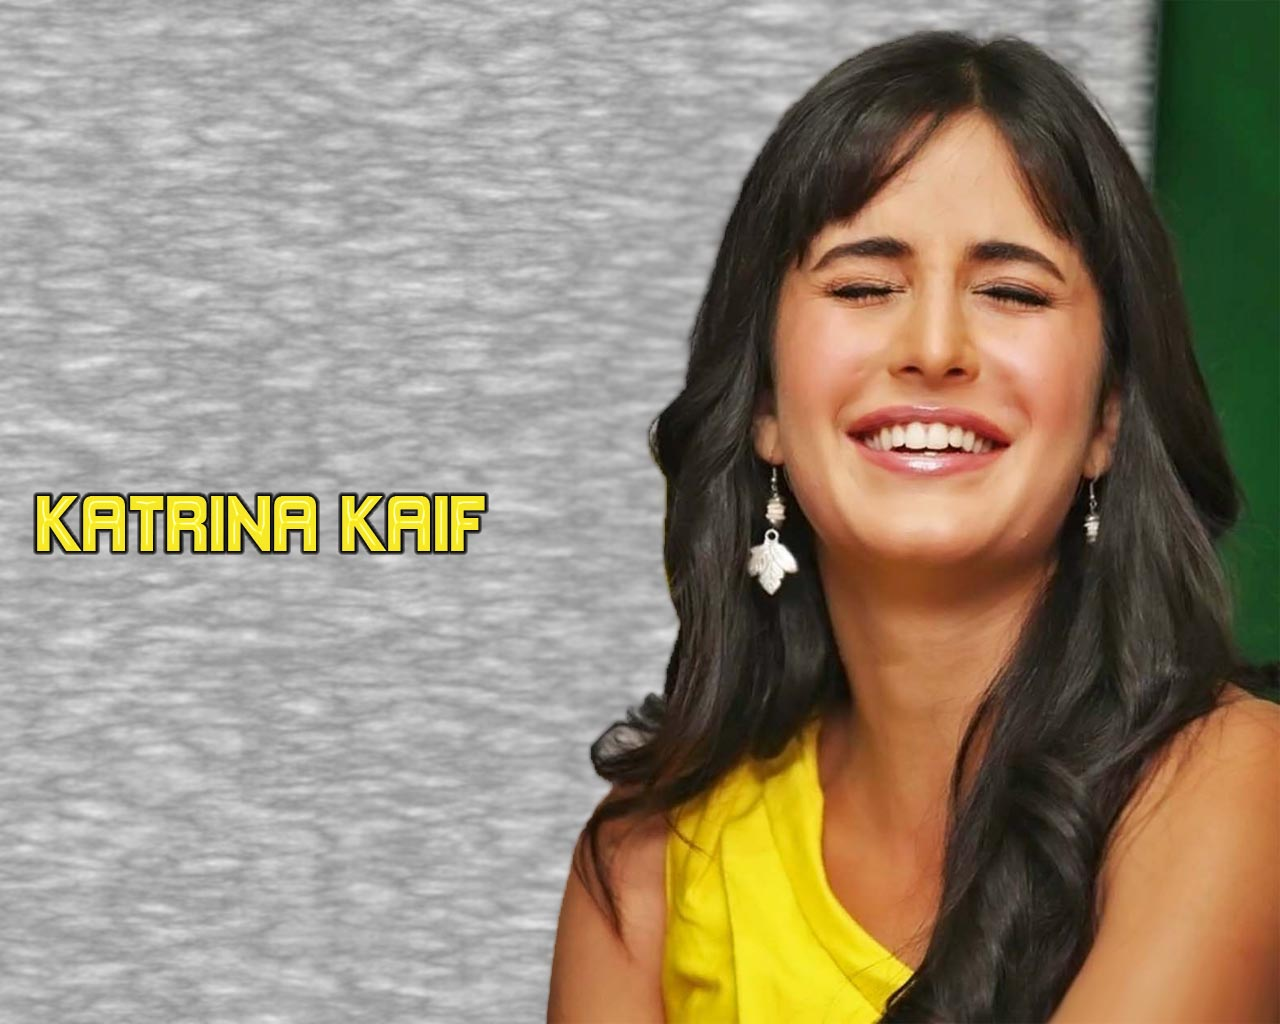 Katrina Kaif Pictures: Katrina Kaif Upcoming Movies List